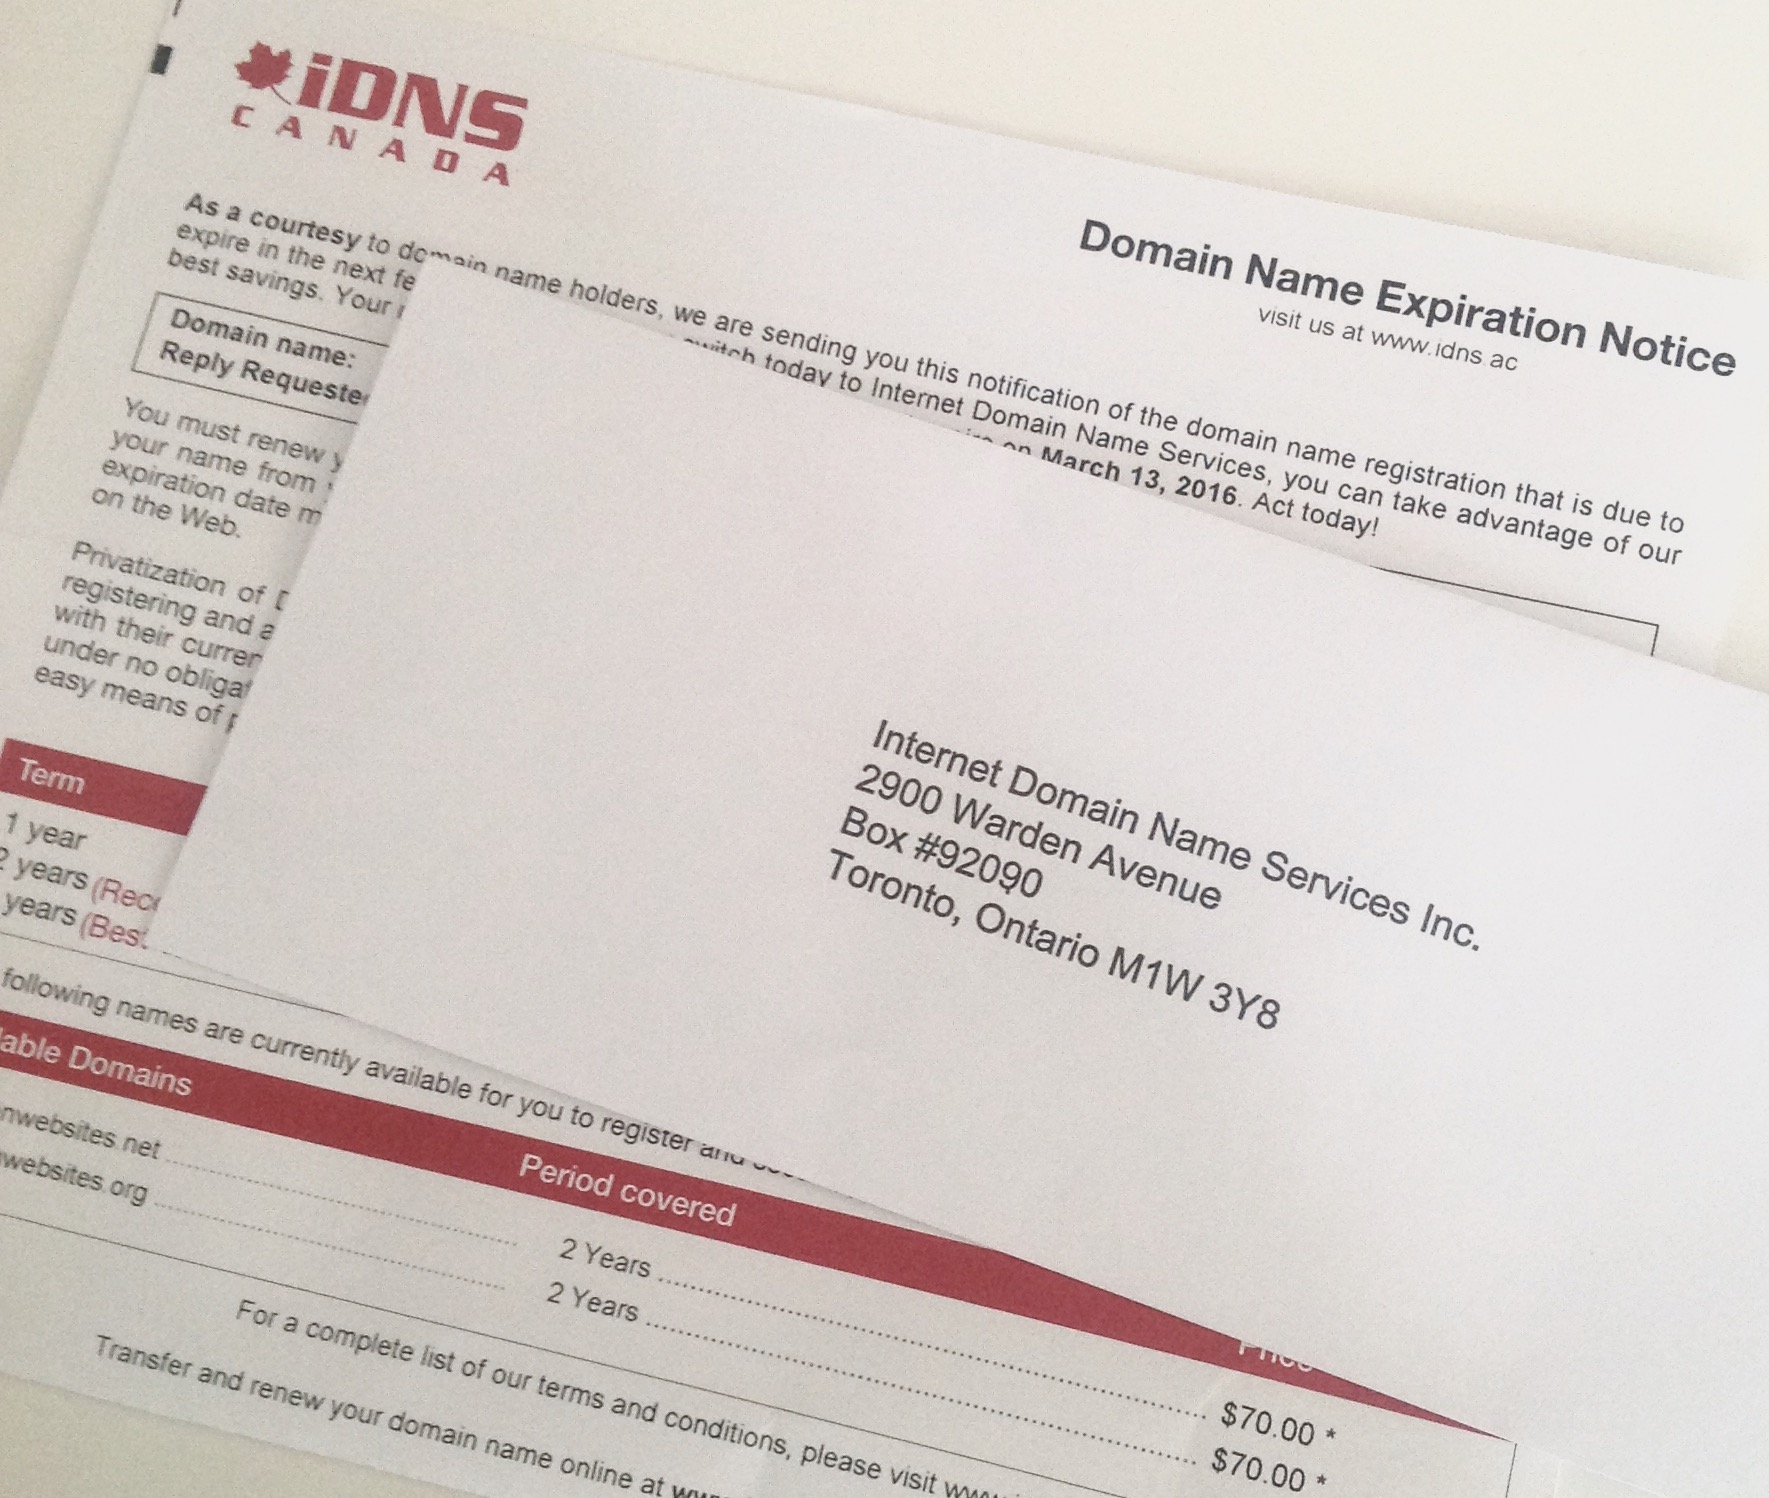 Canadian business owners beware of shady marketing tactics from iDNS Canada